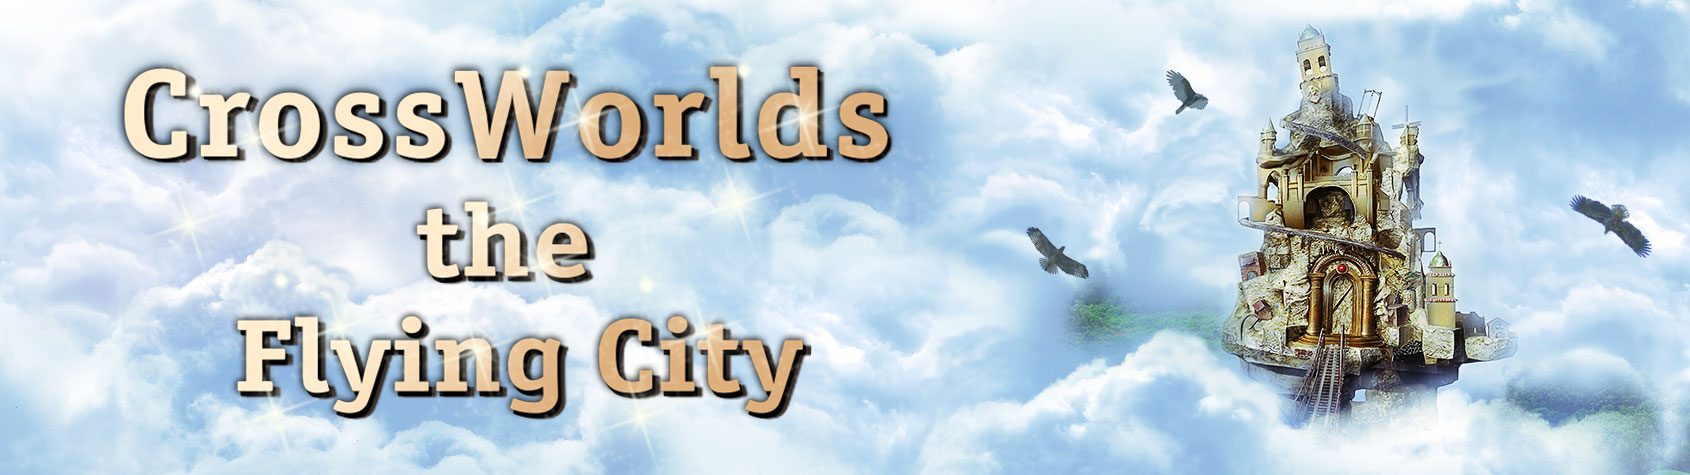 CrossWorlds: the Flying City HD